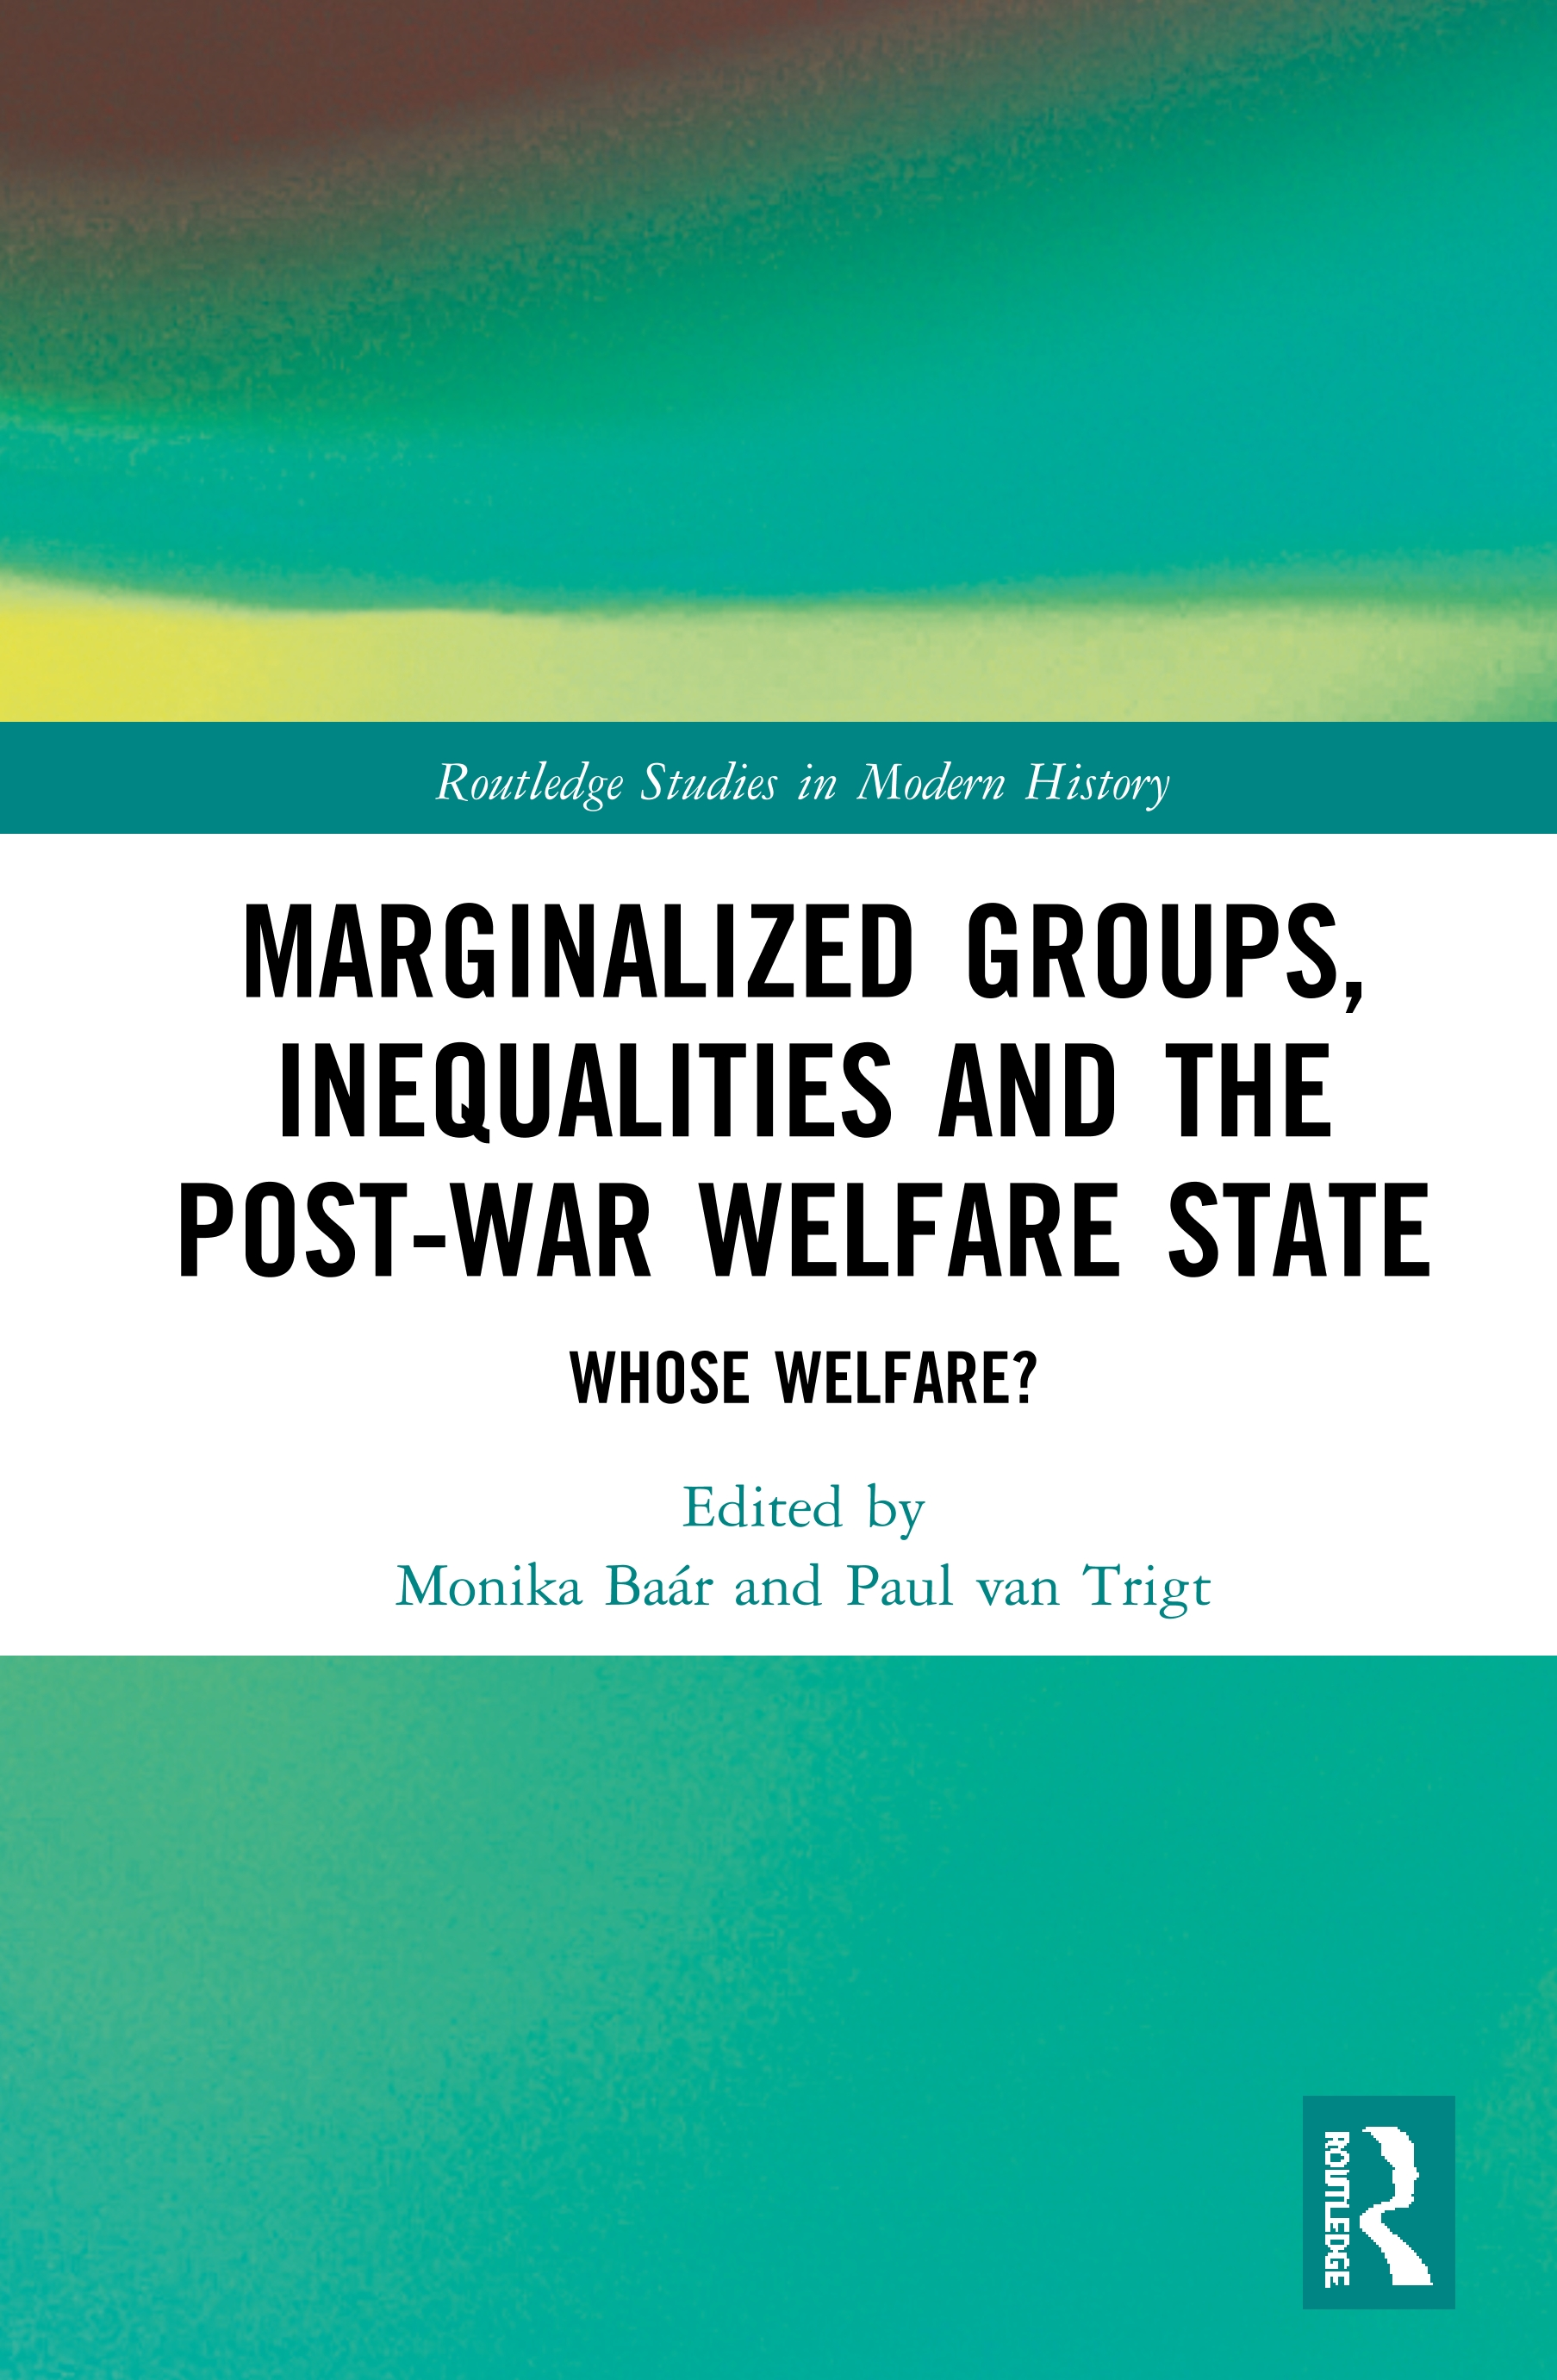 Marginalized Groups, Inequalities and the Post-War Welfare State